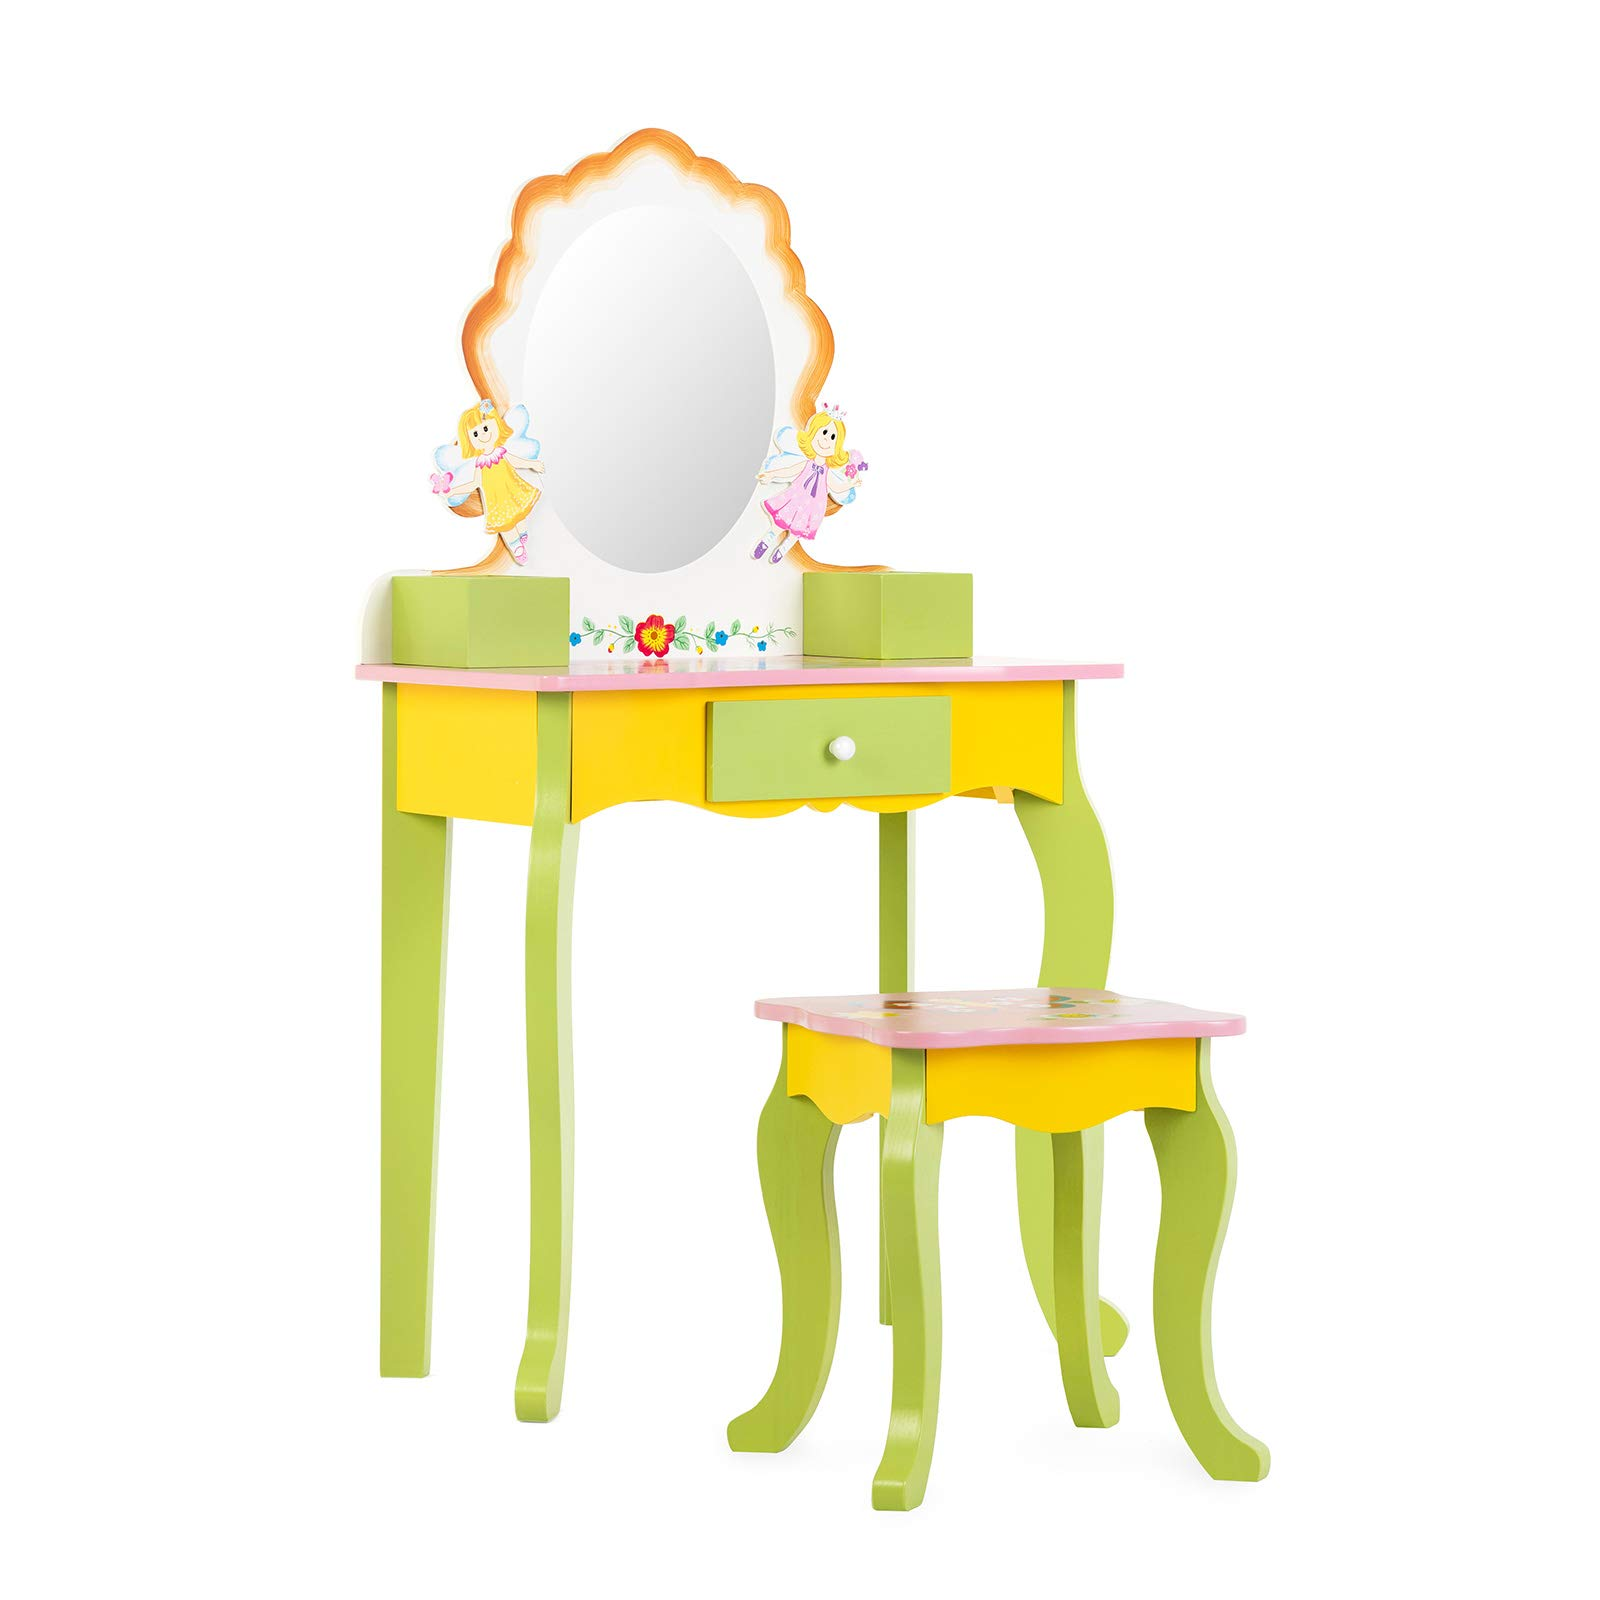 Mecor Kids Vanity Set with Stool,Little Girls Princess Makeup Dressing Table with Drawer/Mirror,Hand Painted Vanity Desk for Children Yellow&Green